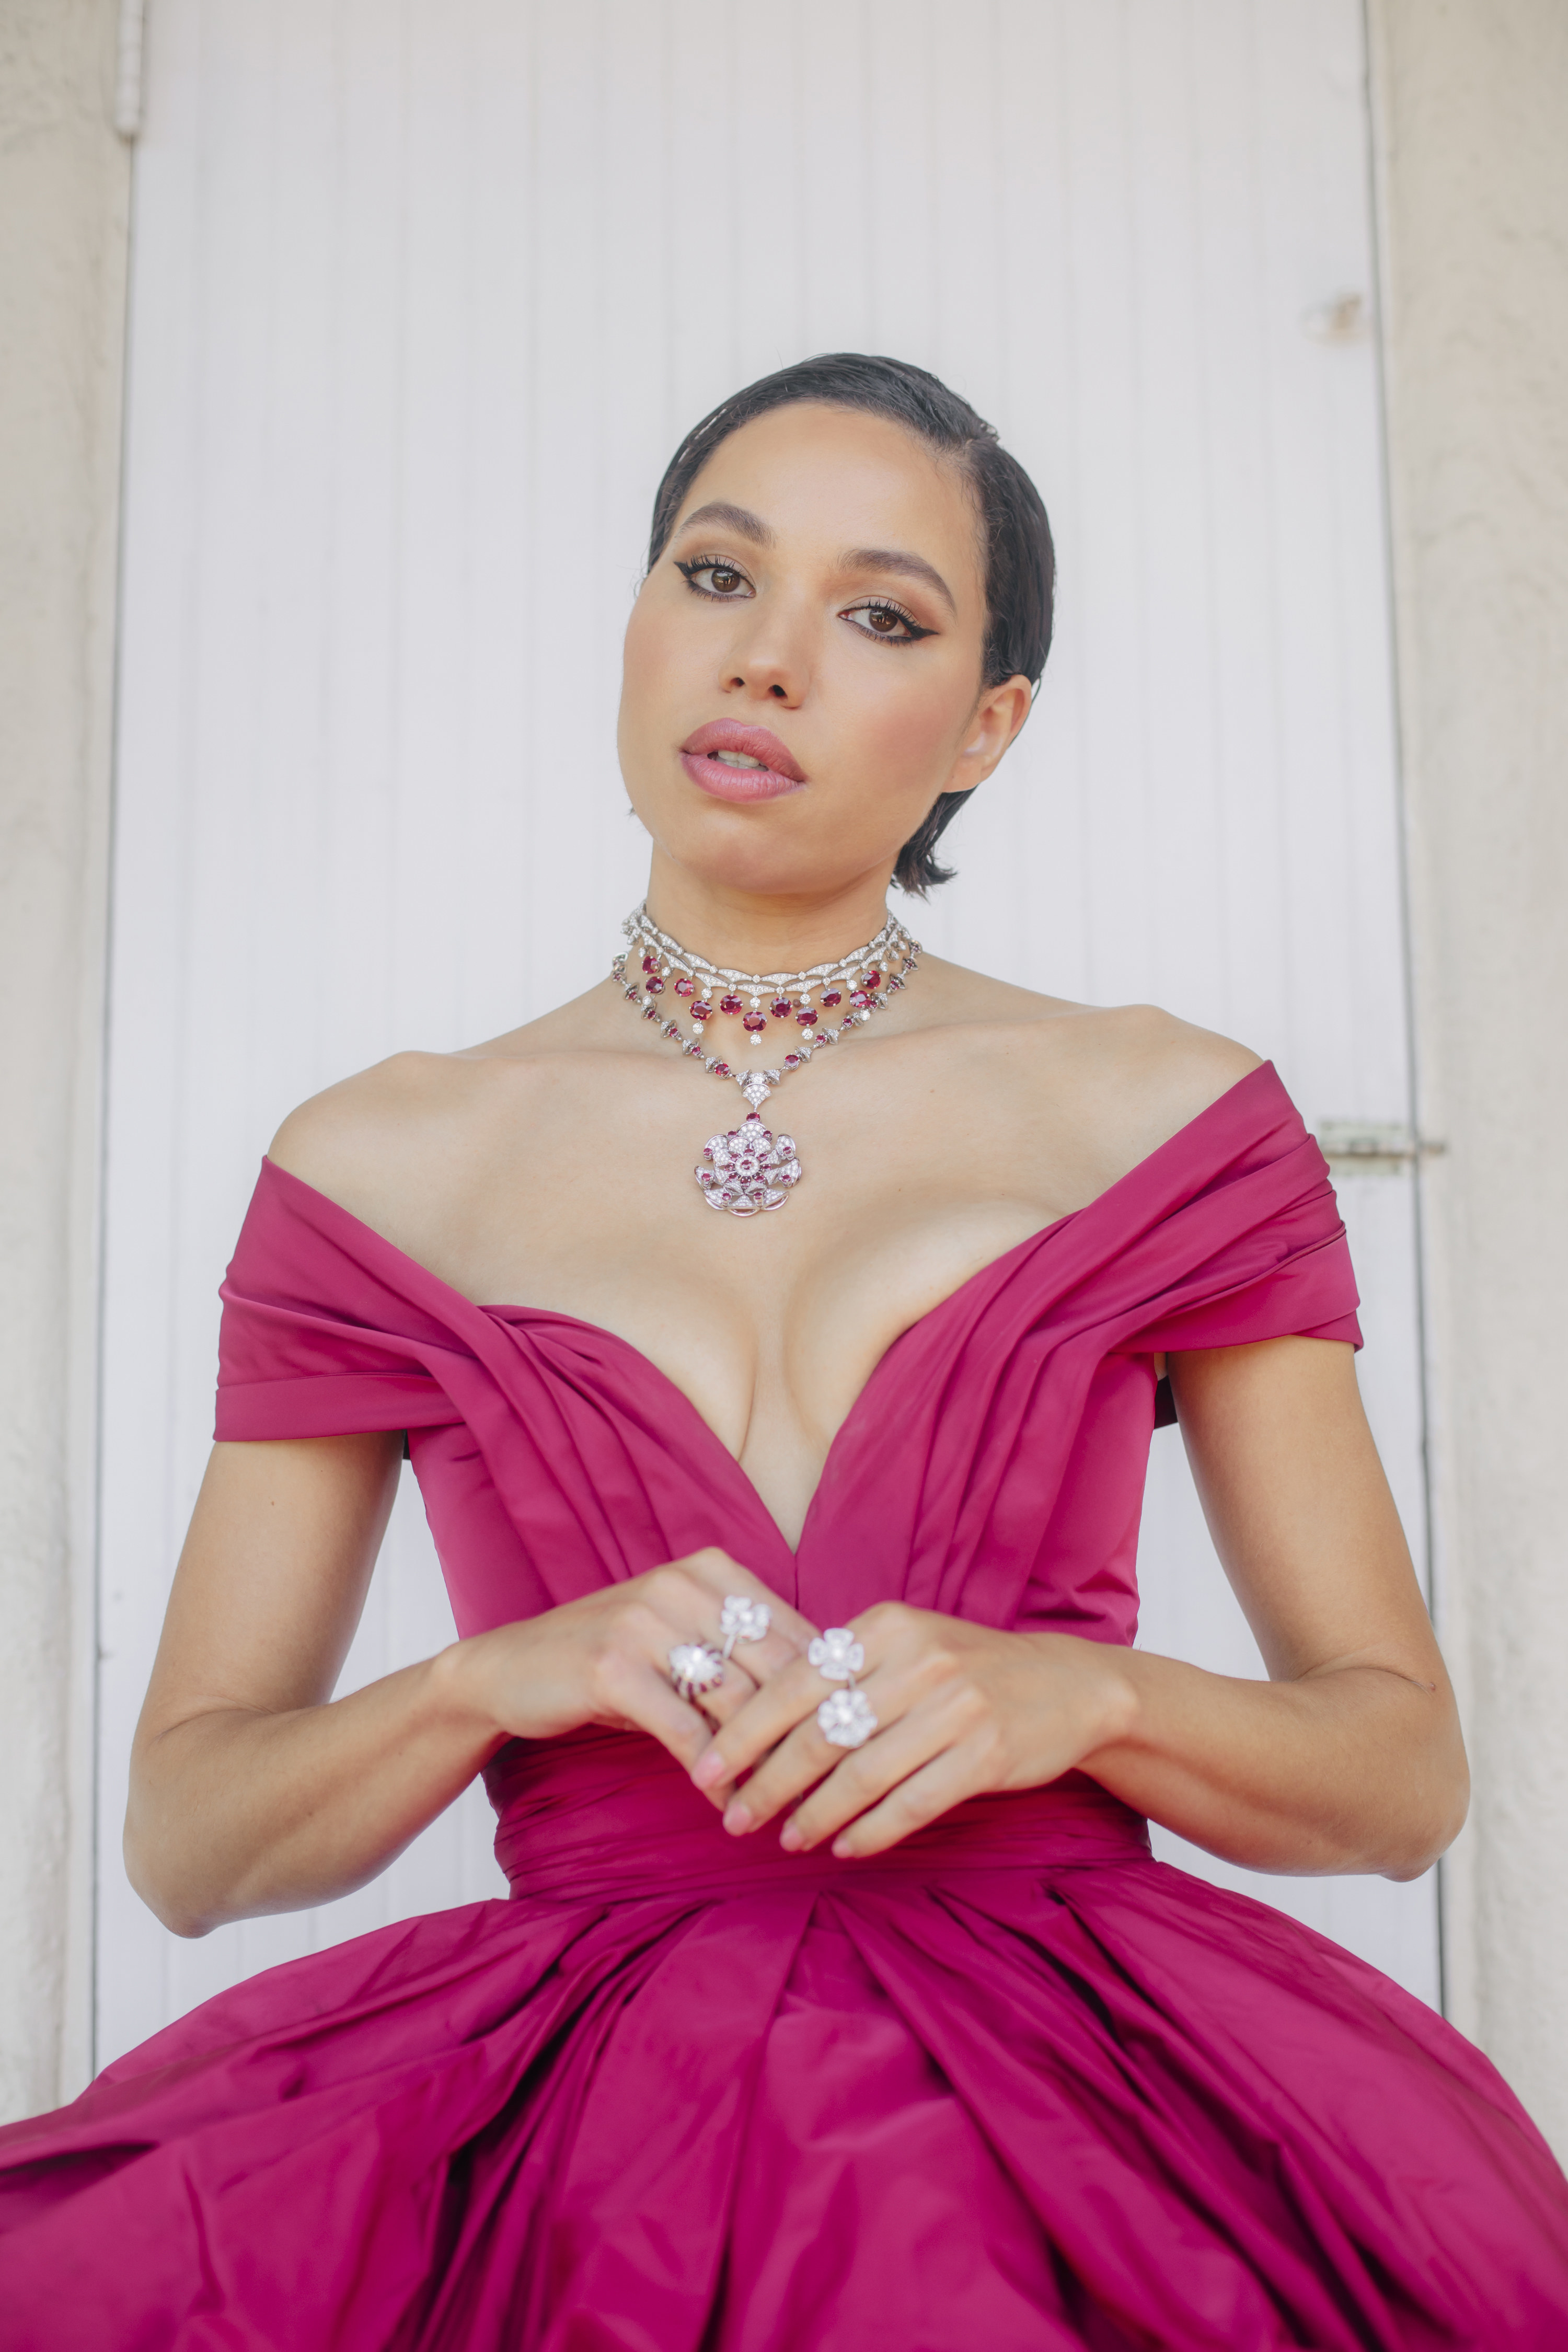 Jurnee posing for a photo in a structured off-shoulder gown